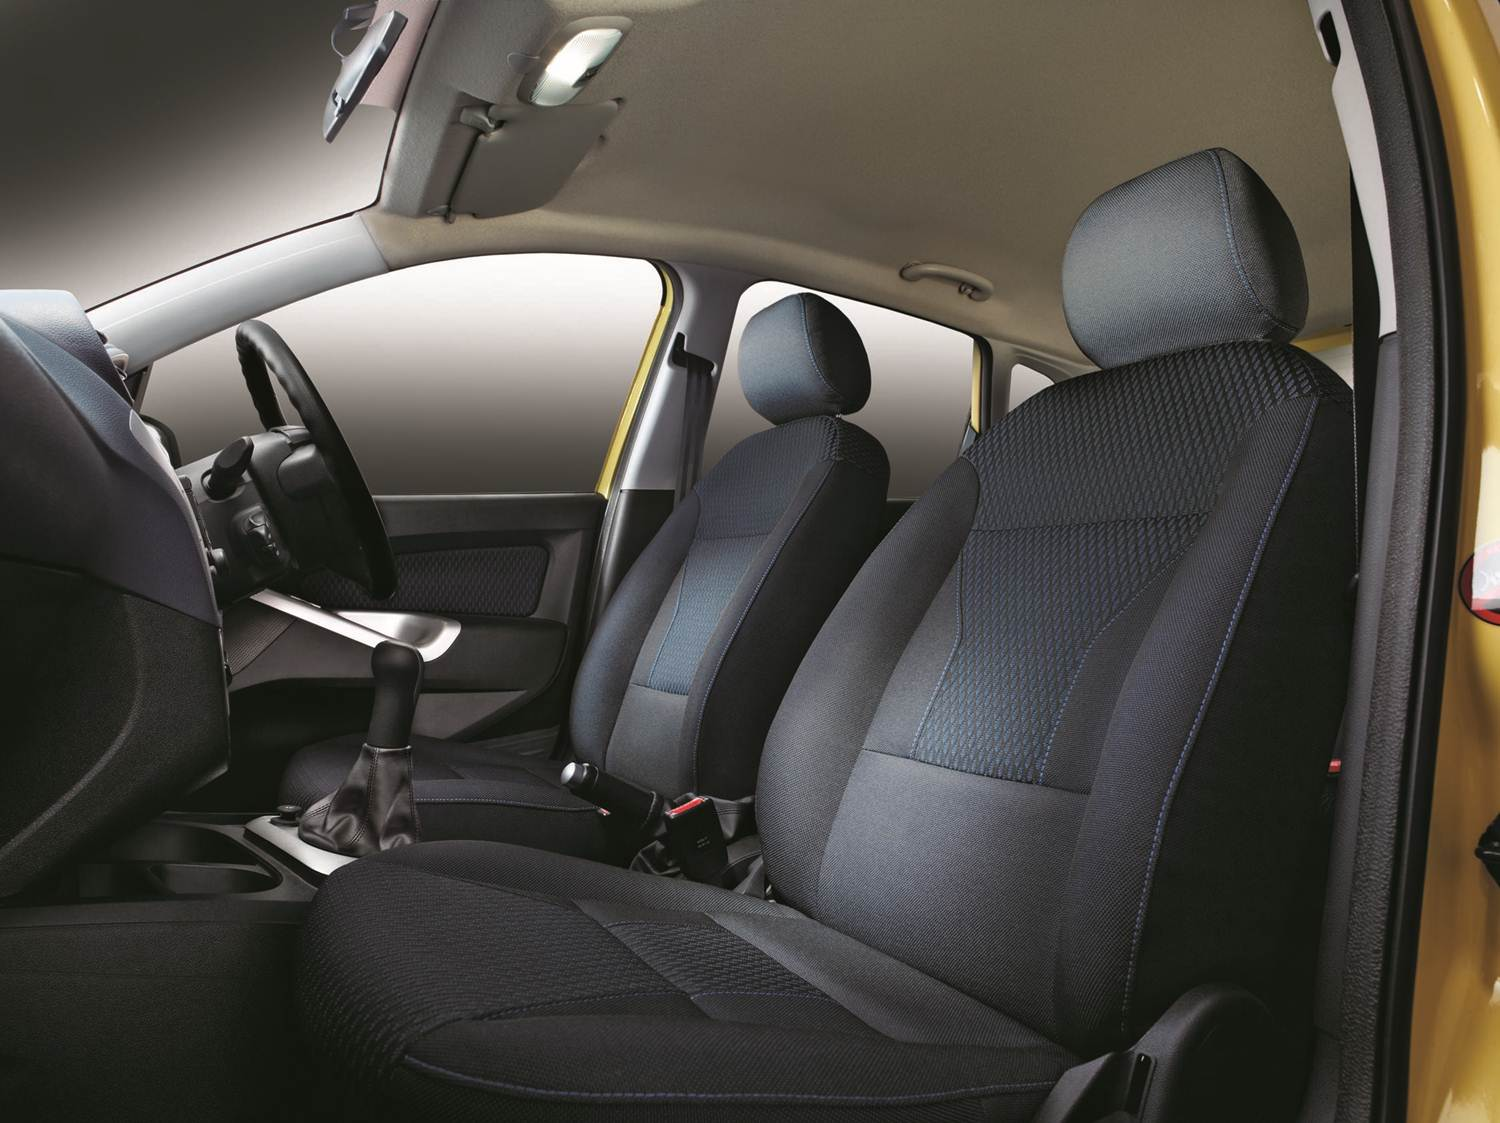 New-figo-seat-fabric-design